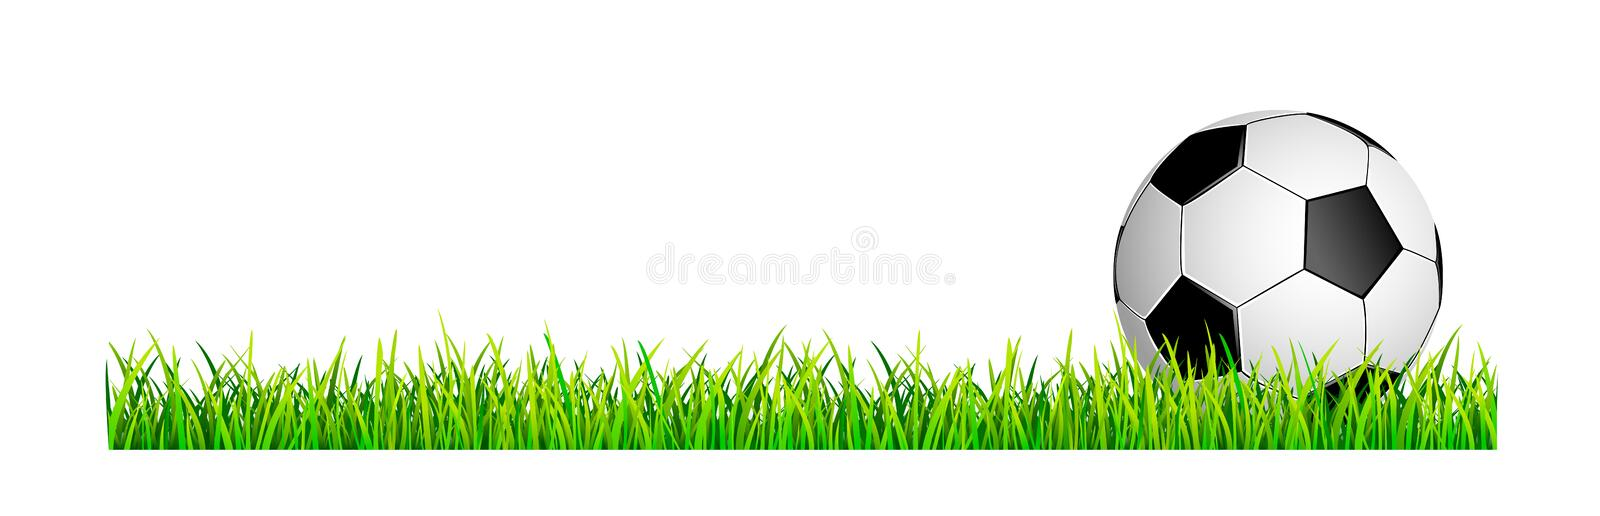 Soccer ball on a green grass lawn royalty free illustration